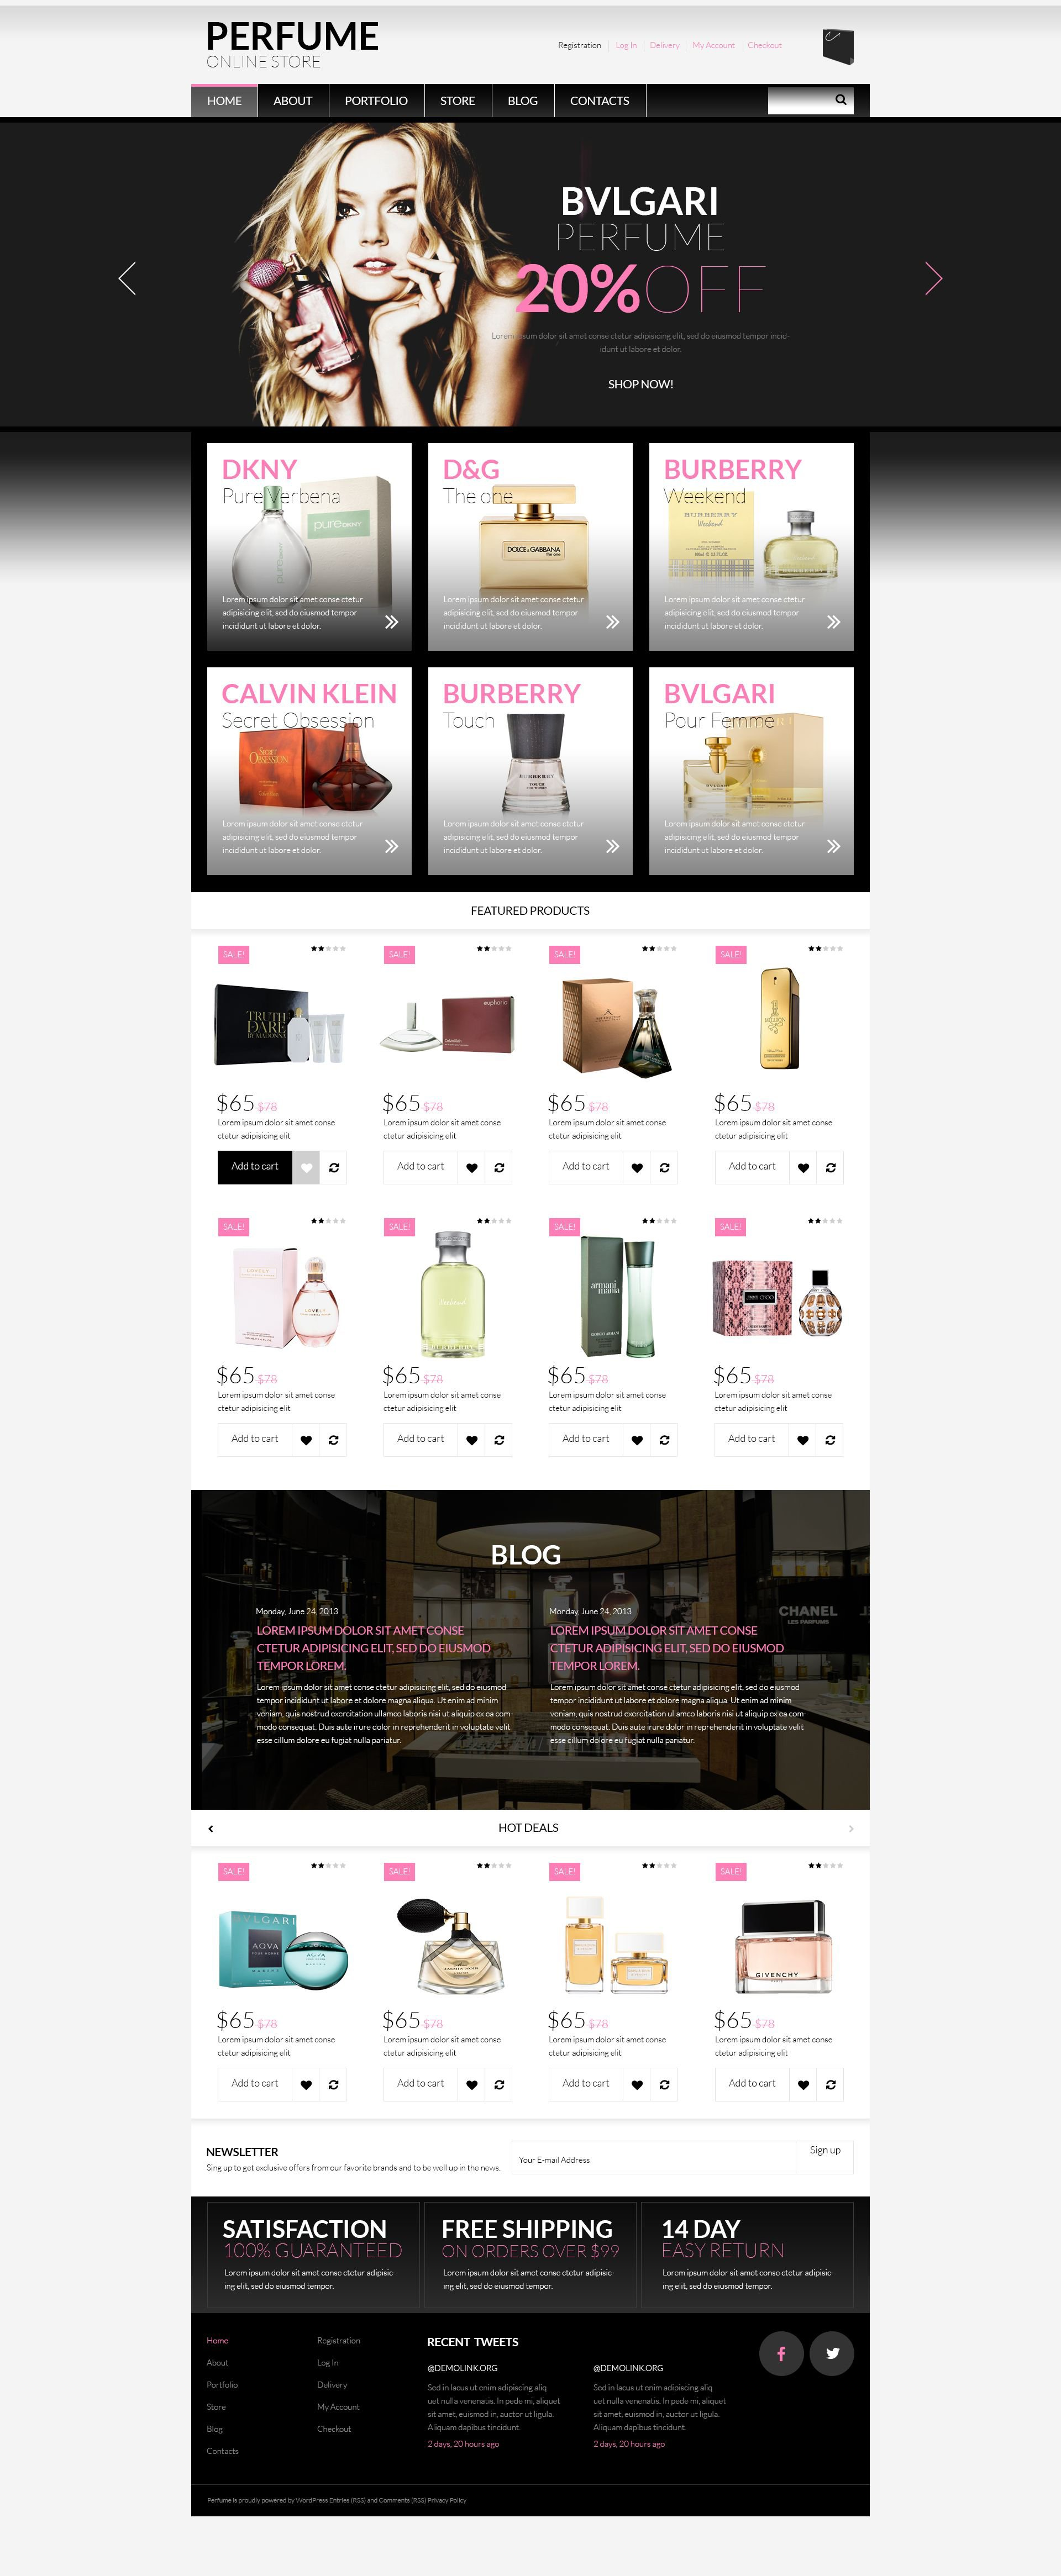 The Perfume Online Shop WooCommerce Design 53420, one of the best WooCommerce themes of its kind (beauty, most popular), also known as perfume online shop WooCommerce template, cosmetic WooCommerce template, beauty WooCommerce template, fashion WooCommerce template, health care WooCommerce template, women solution WooCommerce template, service WooCommerce template, catalogue WooCommerce template, product WooCommerce template, gift WooCommerce template, skincare WooCommerce template, hair care WooCommerce template, style WooCommerce template, cream WooCommerce template, natural WooCommerce template, rejuvenation WooCommerce template, damping WooCommerce template, lifting WooCommerce template, peeling WooCommerce template, specials WooCommerce template, lipstick WooCommerce template, mascara WooCommerce template, nail WooCommerce template, polish WooCommerce template, shampoo WooCommerce template, body WooCommerce template, milk WooCommerce template, lotion WooCommerce template, hand WooCommerce template, client and related with perfume online shop, cosmetic, beauty, fashion, health care, women solution, service, catalogue, product, gift, skincare, hair care, style, cream, natural, rejuvenation, damping, lifting, peeling, specials, lipstick, mascara, nail, polish, shampoo, body, milk, lotion, hand, client, etc.